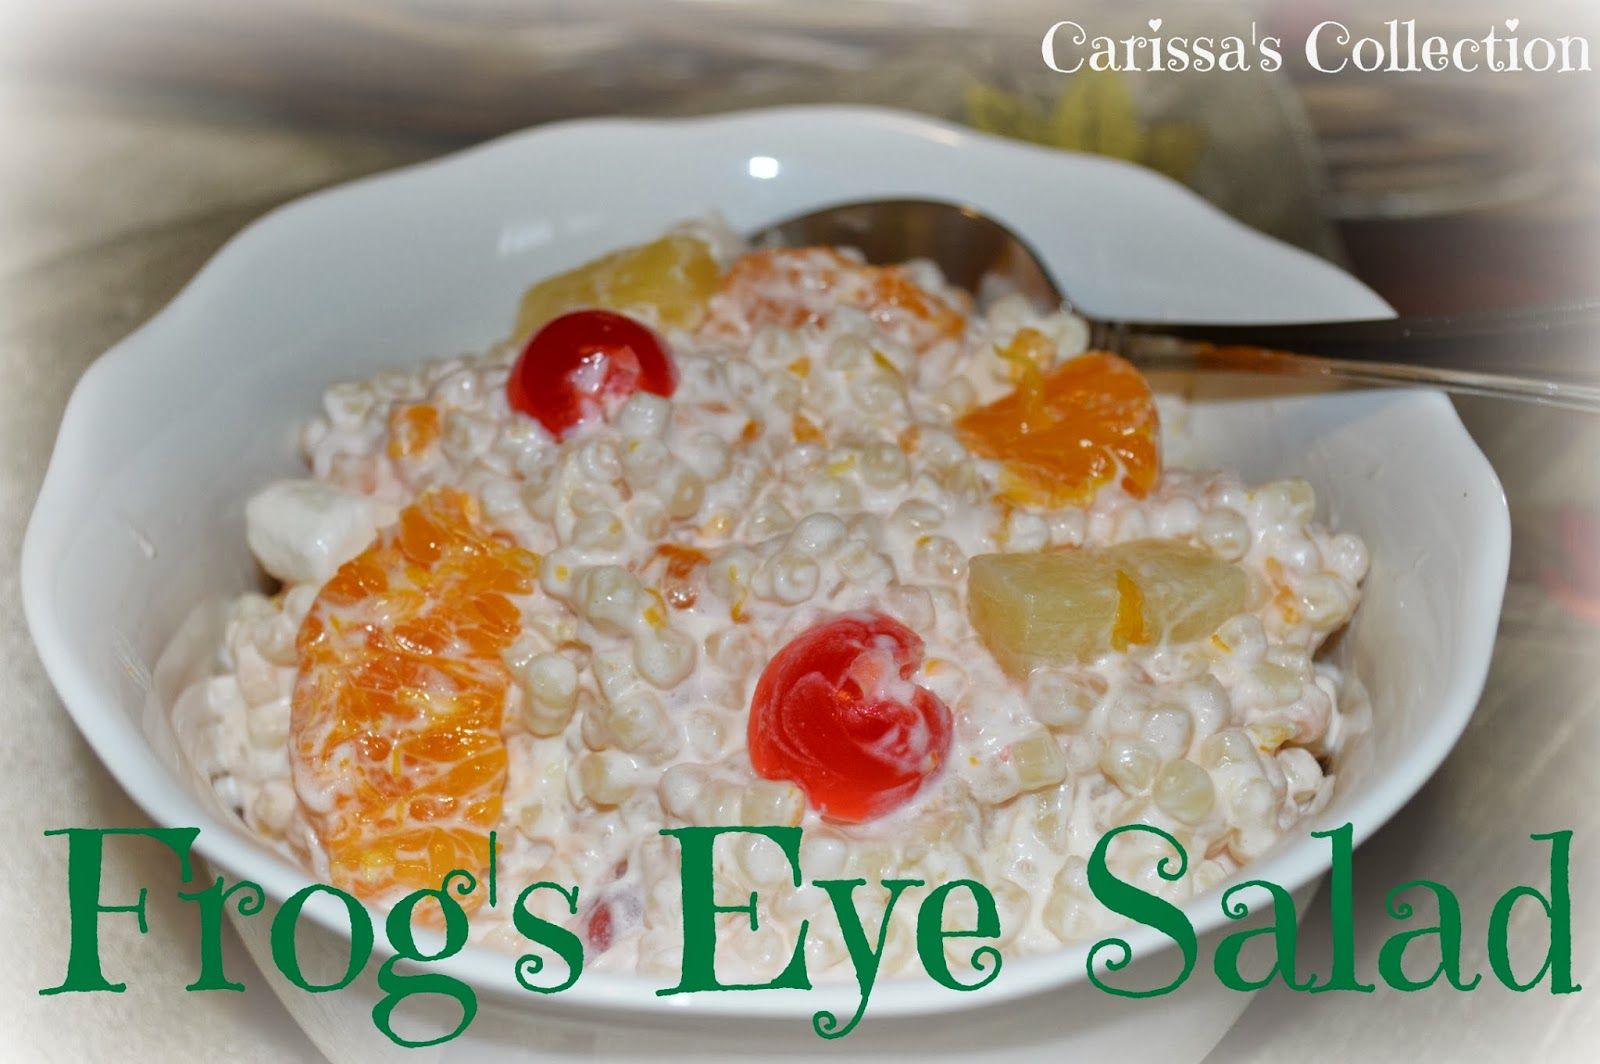 Carissa's Collections: Frog's Eye Salad